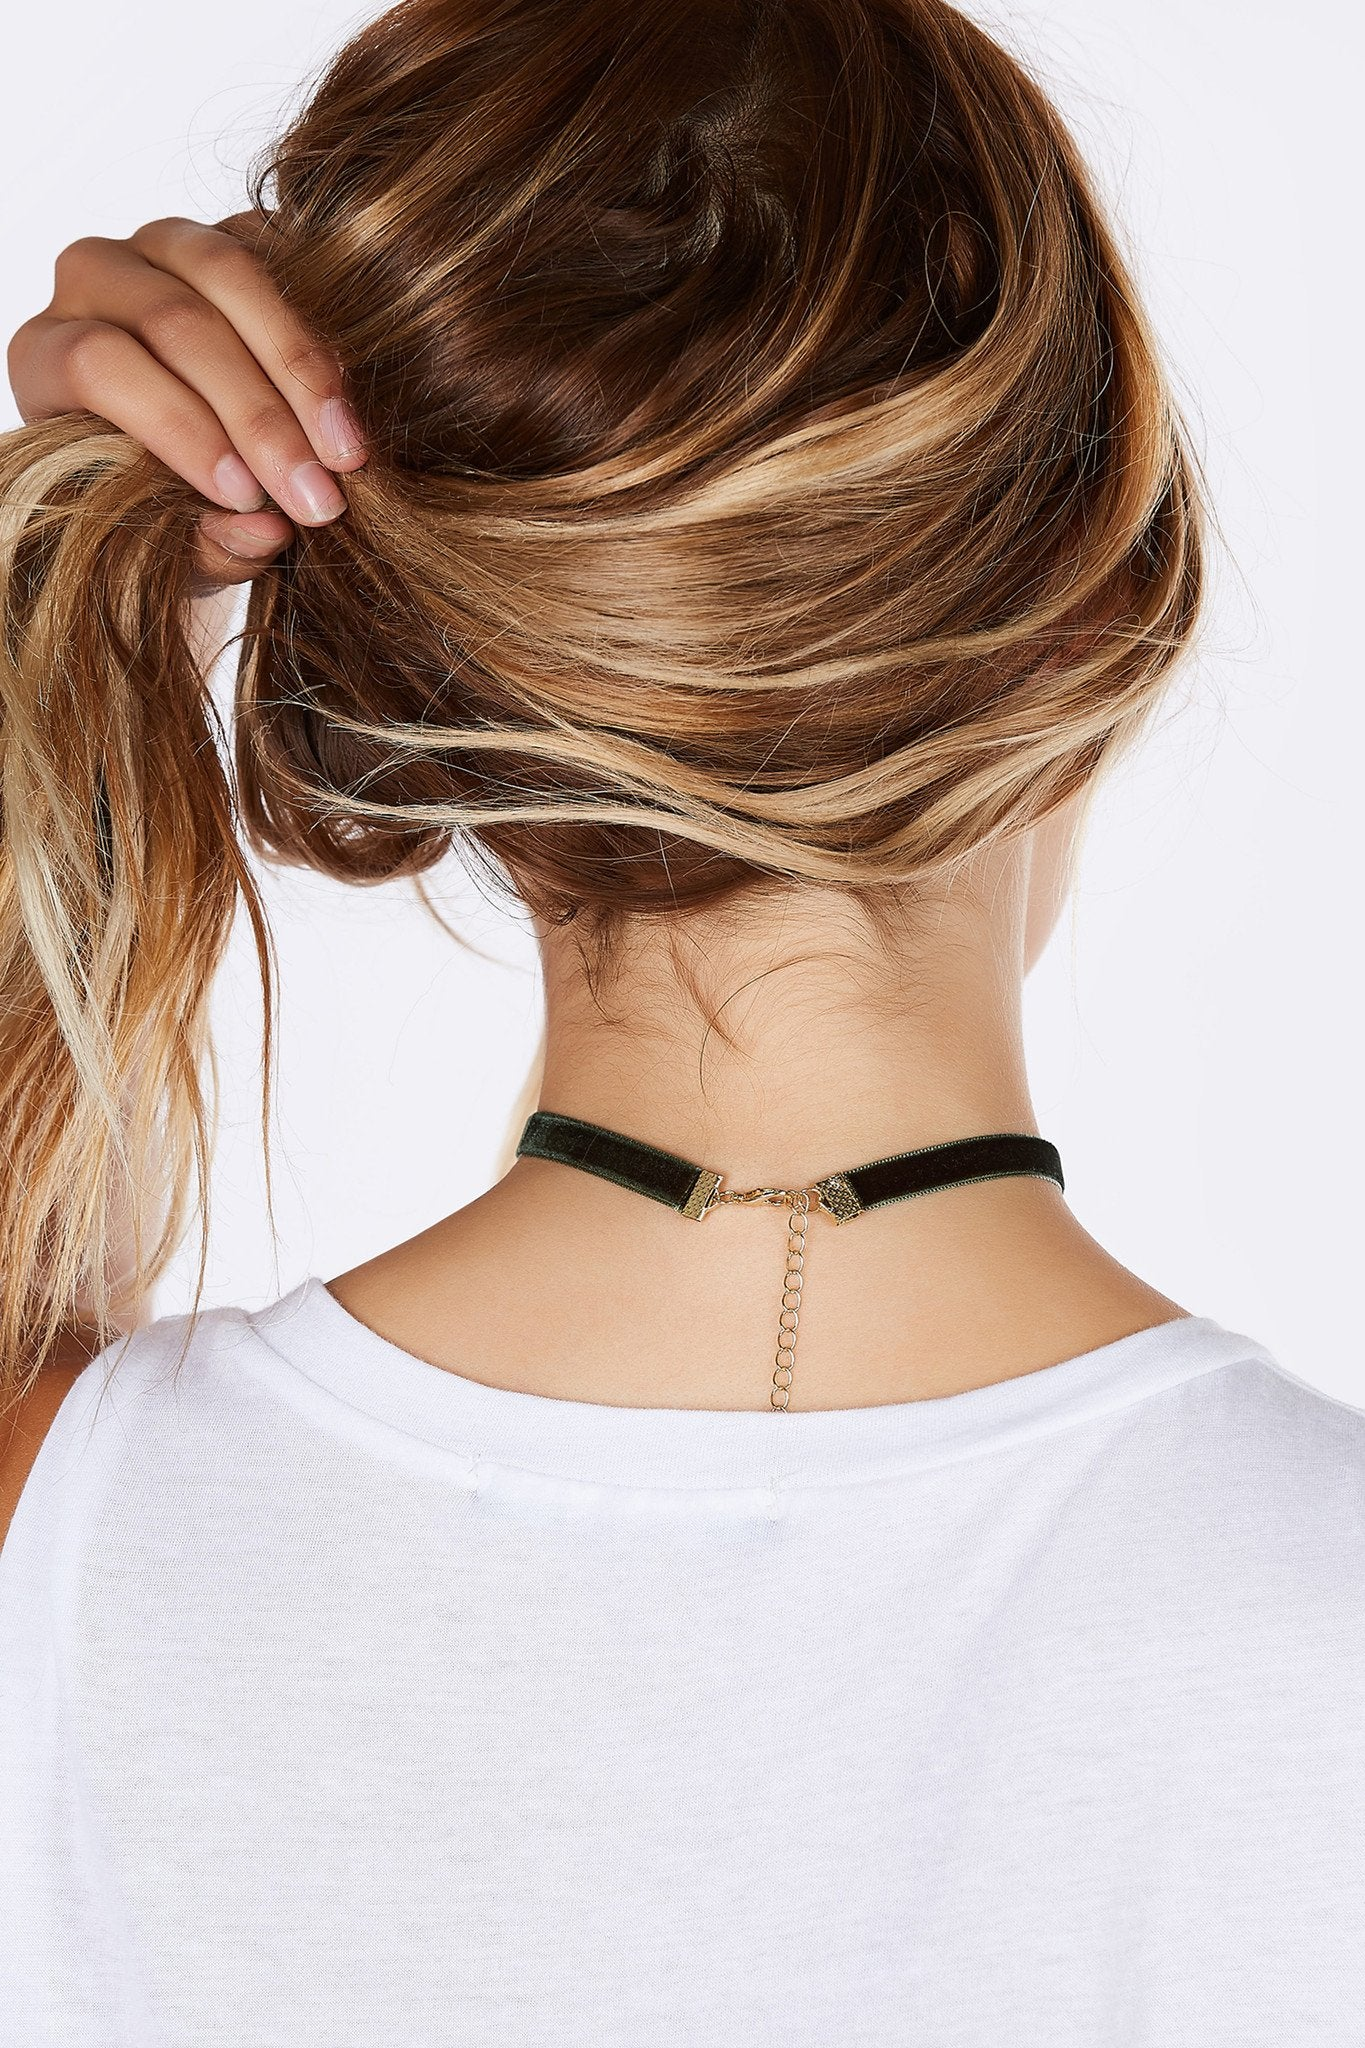 A chic choker with a lovely velvet finish. A trendy accessory that will go with just about any outfit! Simple strap detailing with lobster clasp for fit and closure.